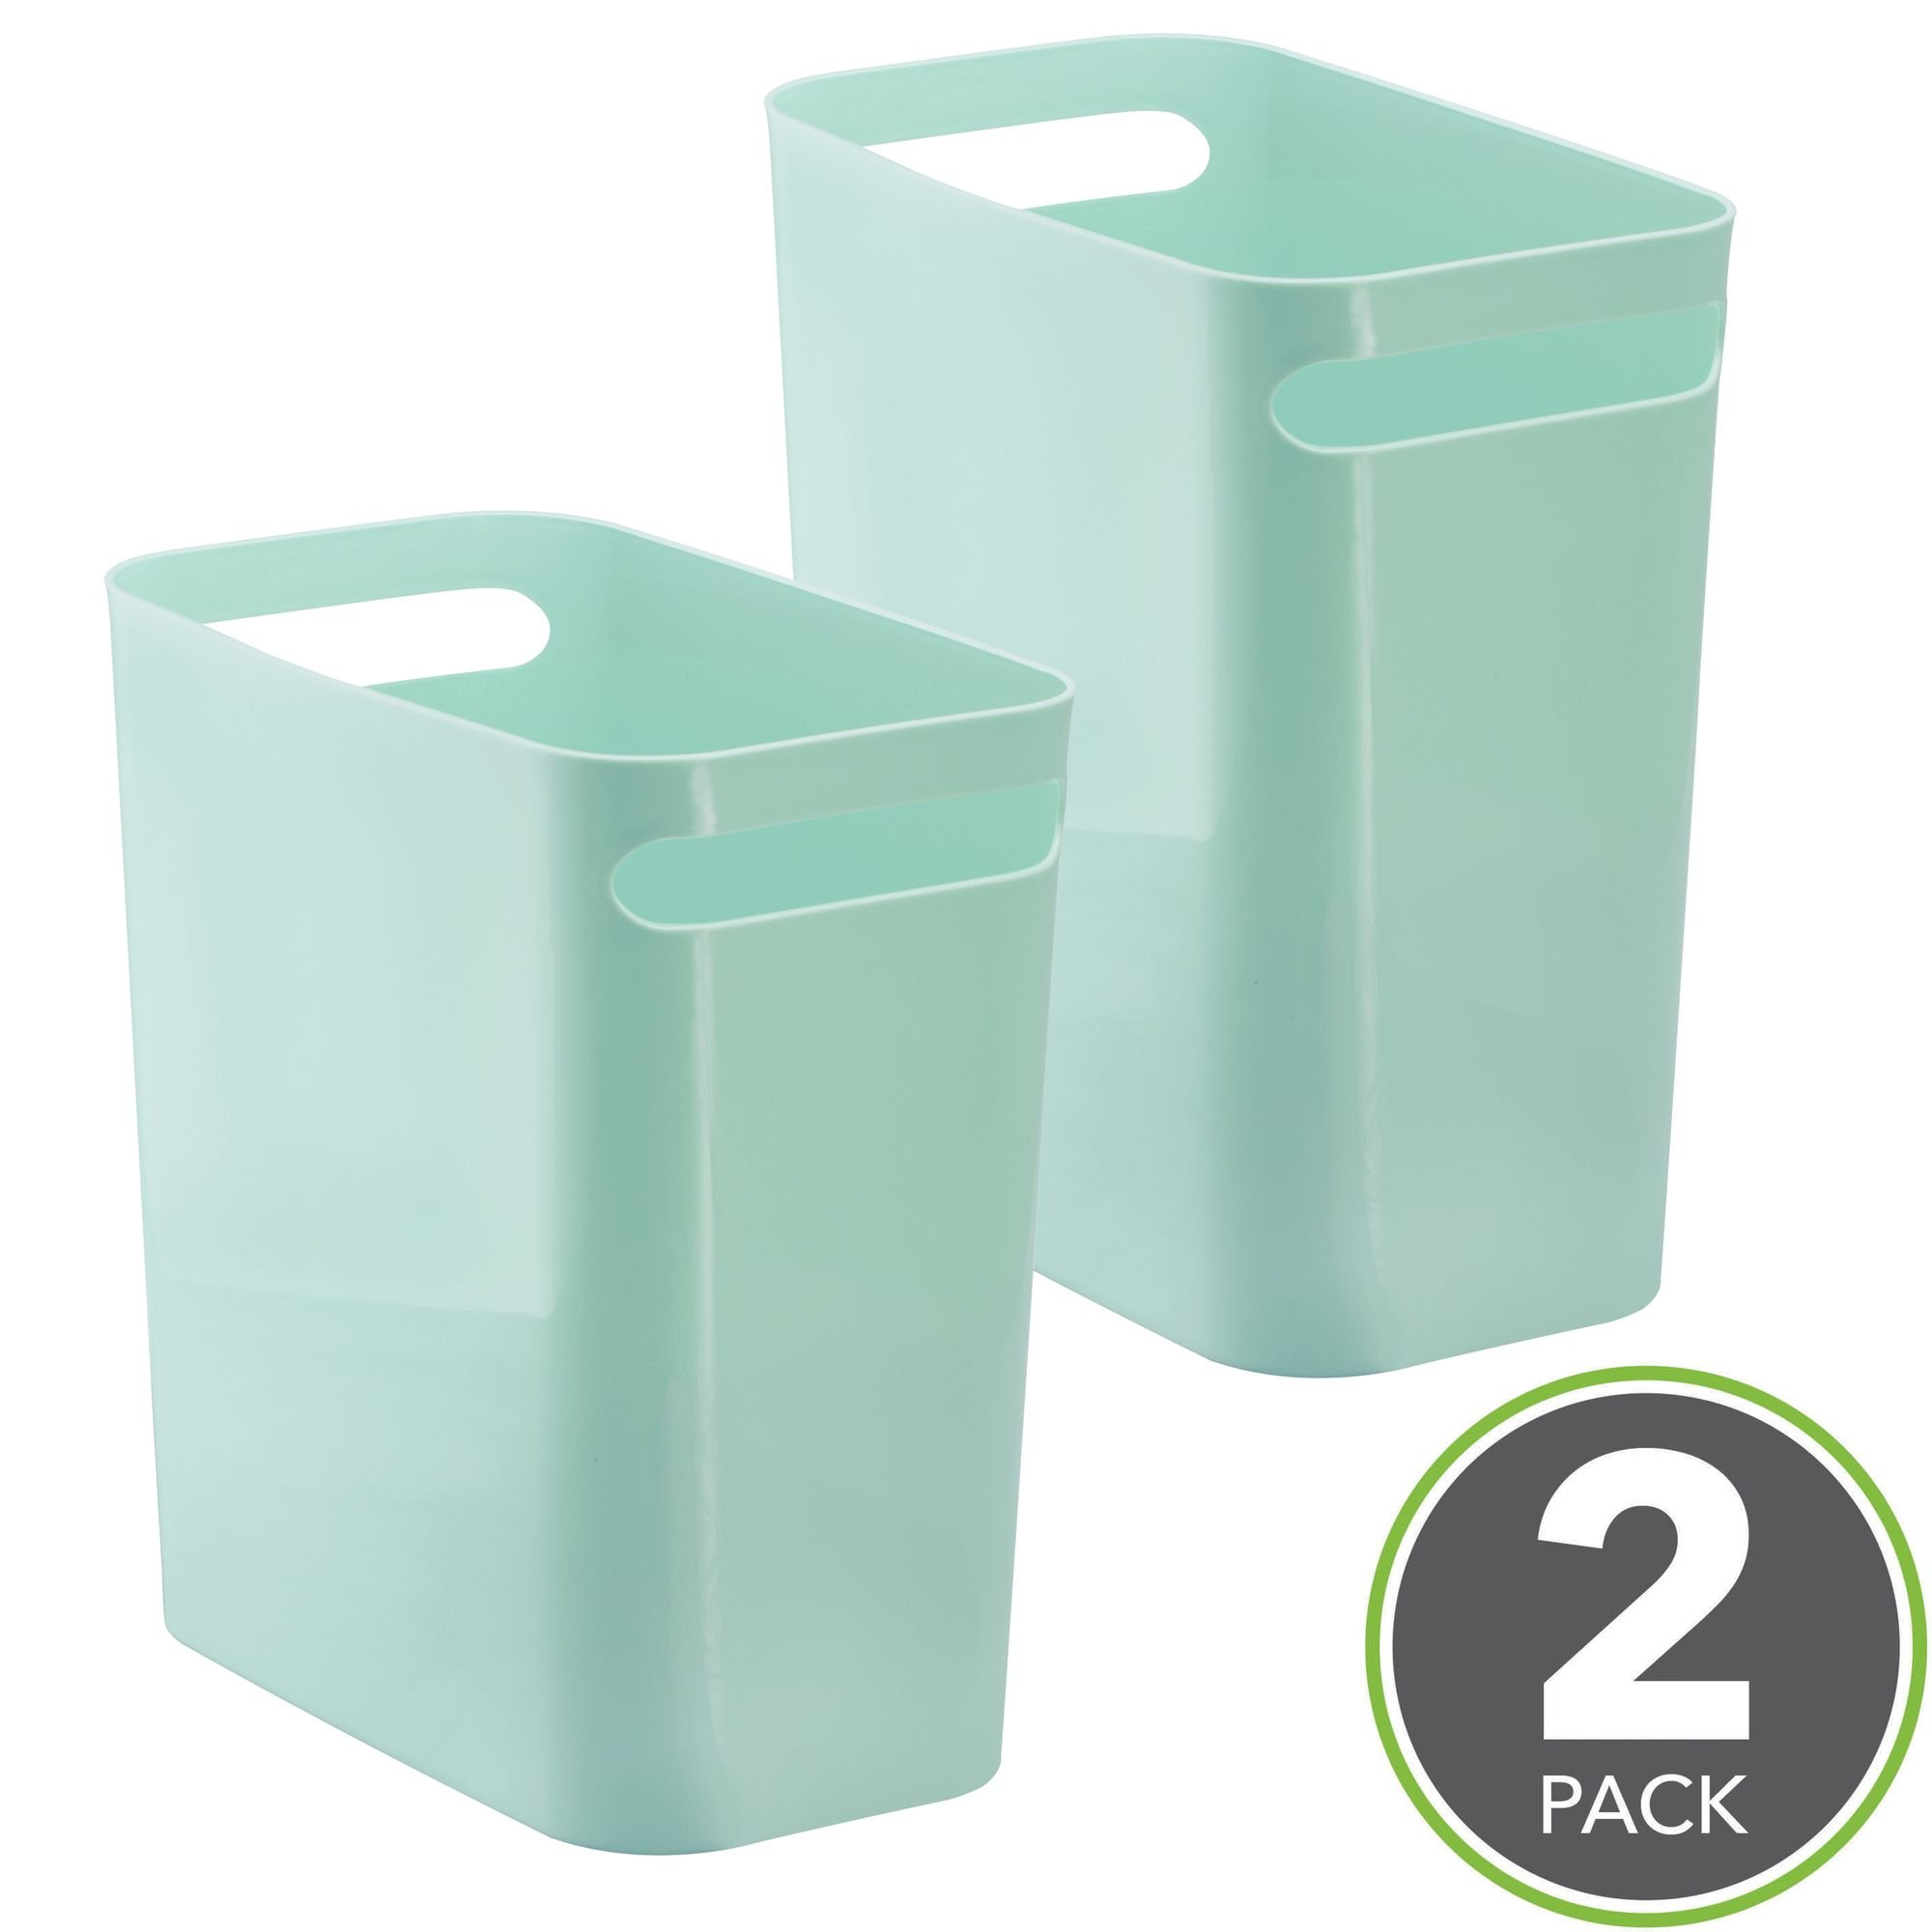 mDesign Slim Rectangular Small Trash Can Wastebasket, Garbage Container Bin with Handles for Bathrooms, Kitchens, Home Offices, Dorms, Kids Rooms — Pack of 2, 12 inch high, Plastic, Mint